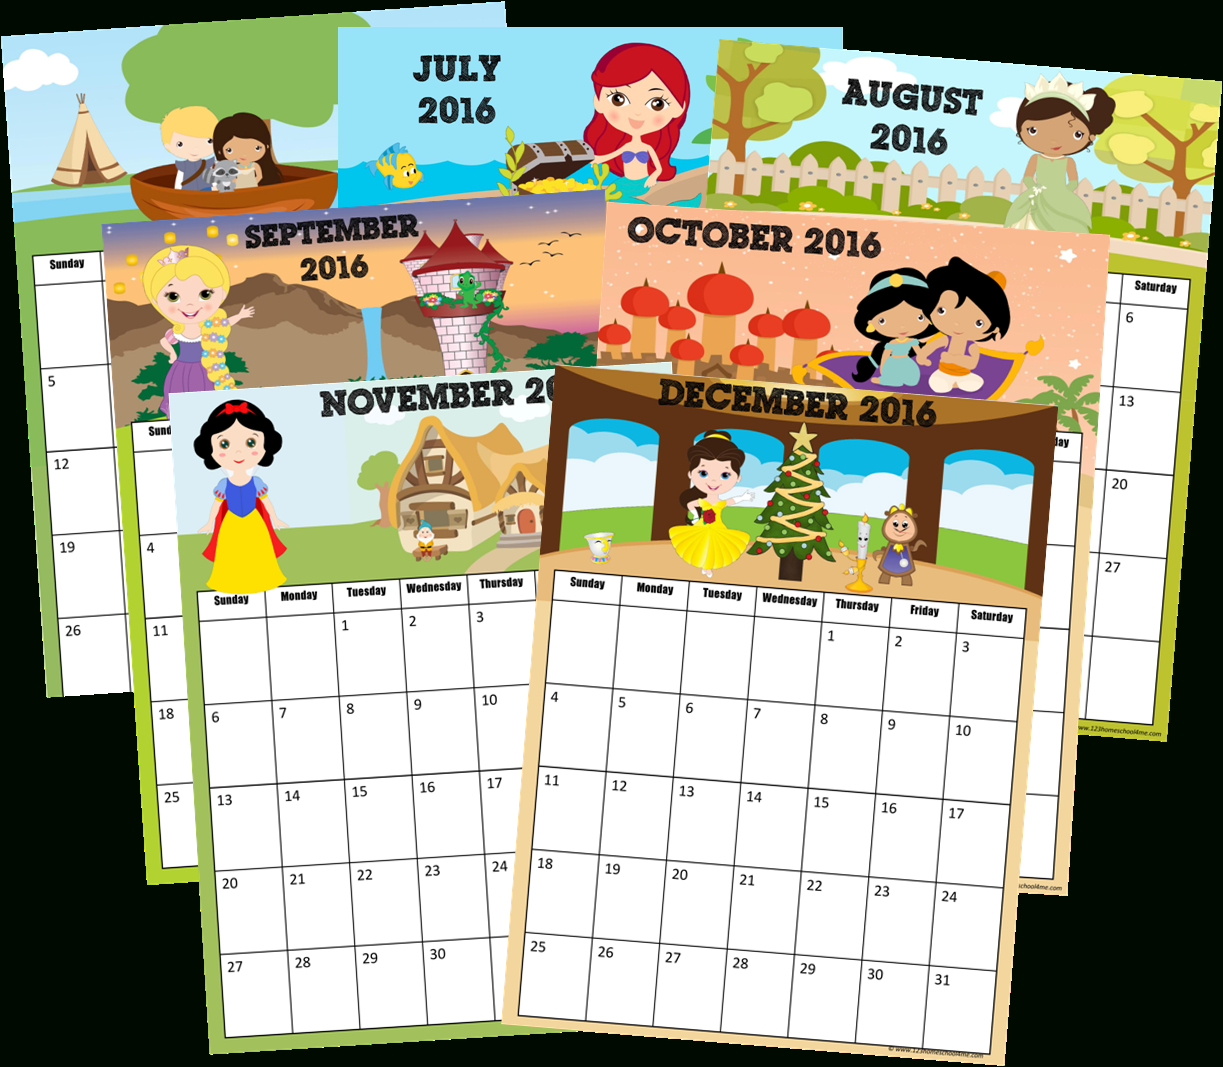 Walt Disney World Mickey Mouse Calendar Minnie Mouse Disney regarding Disney Printable Calendar